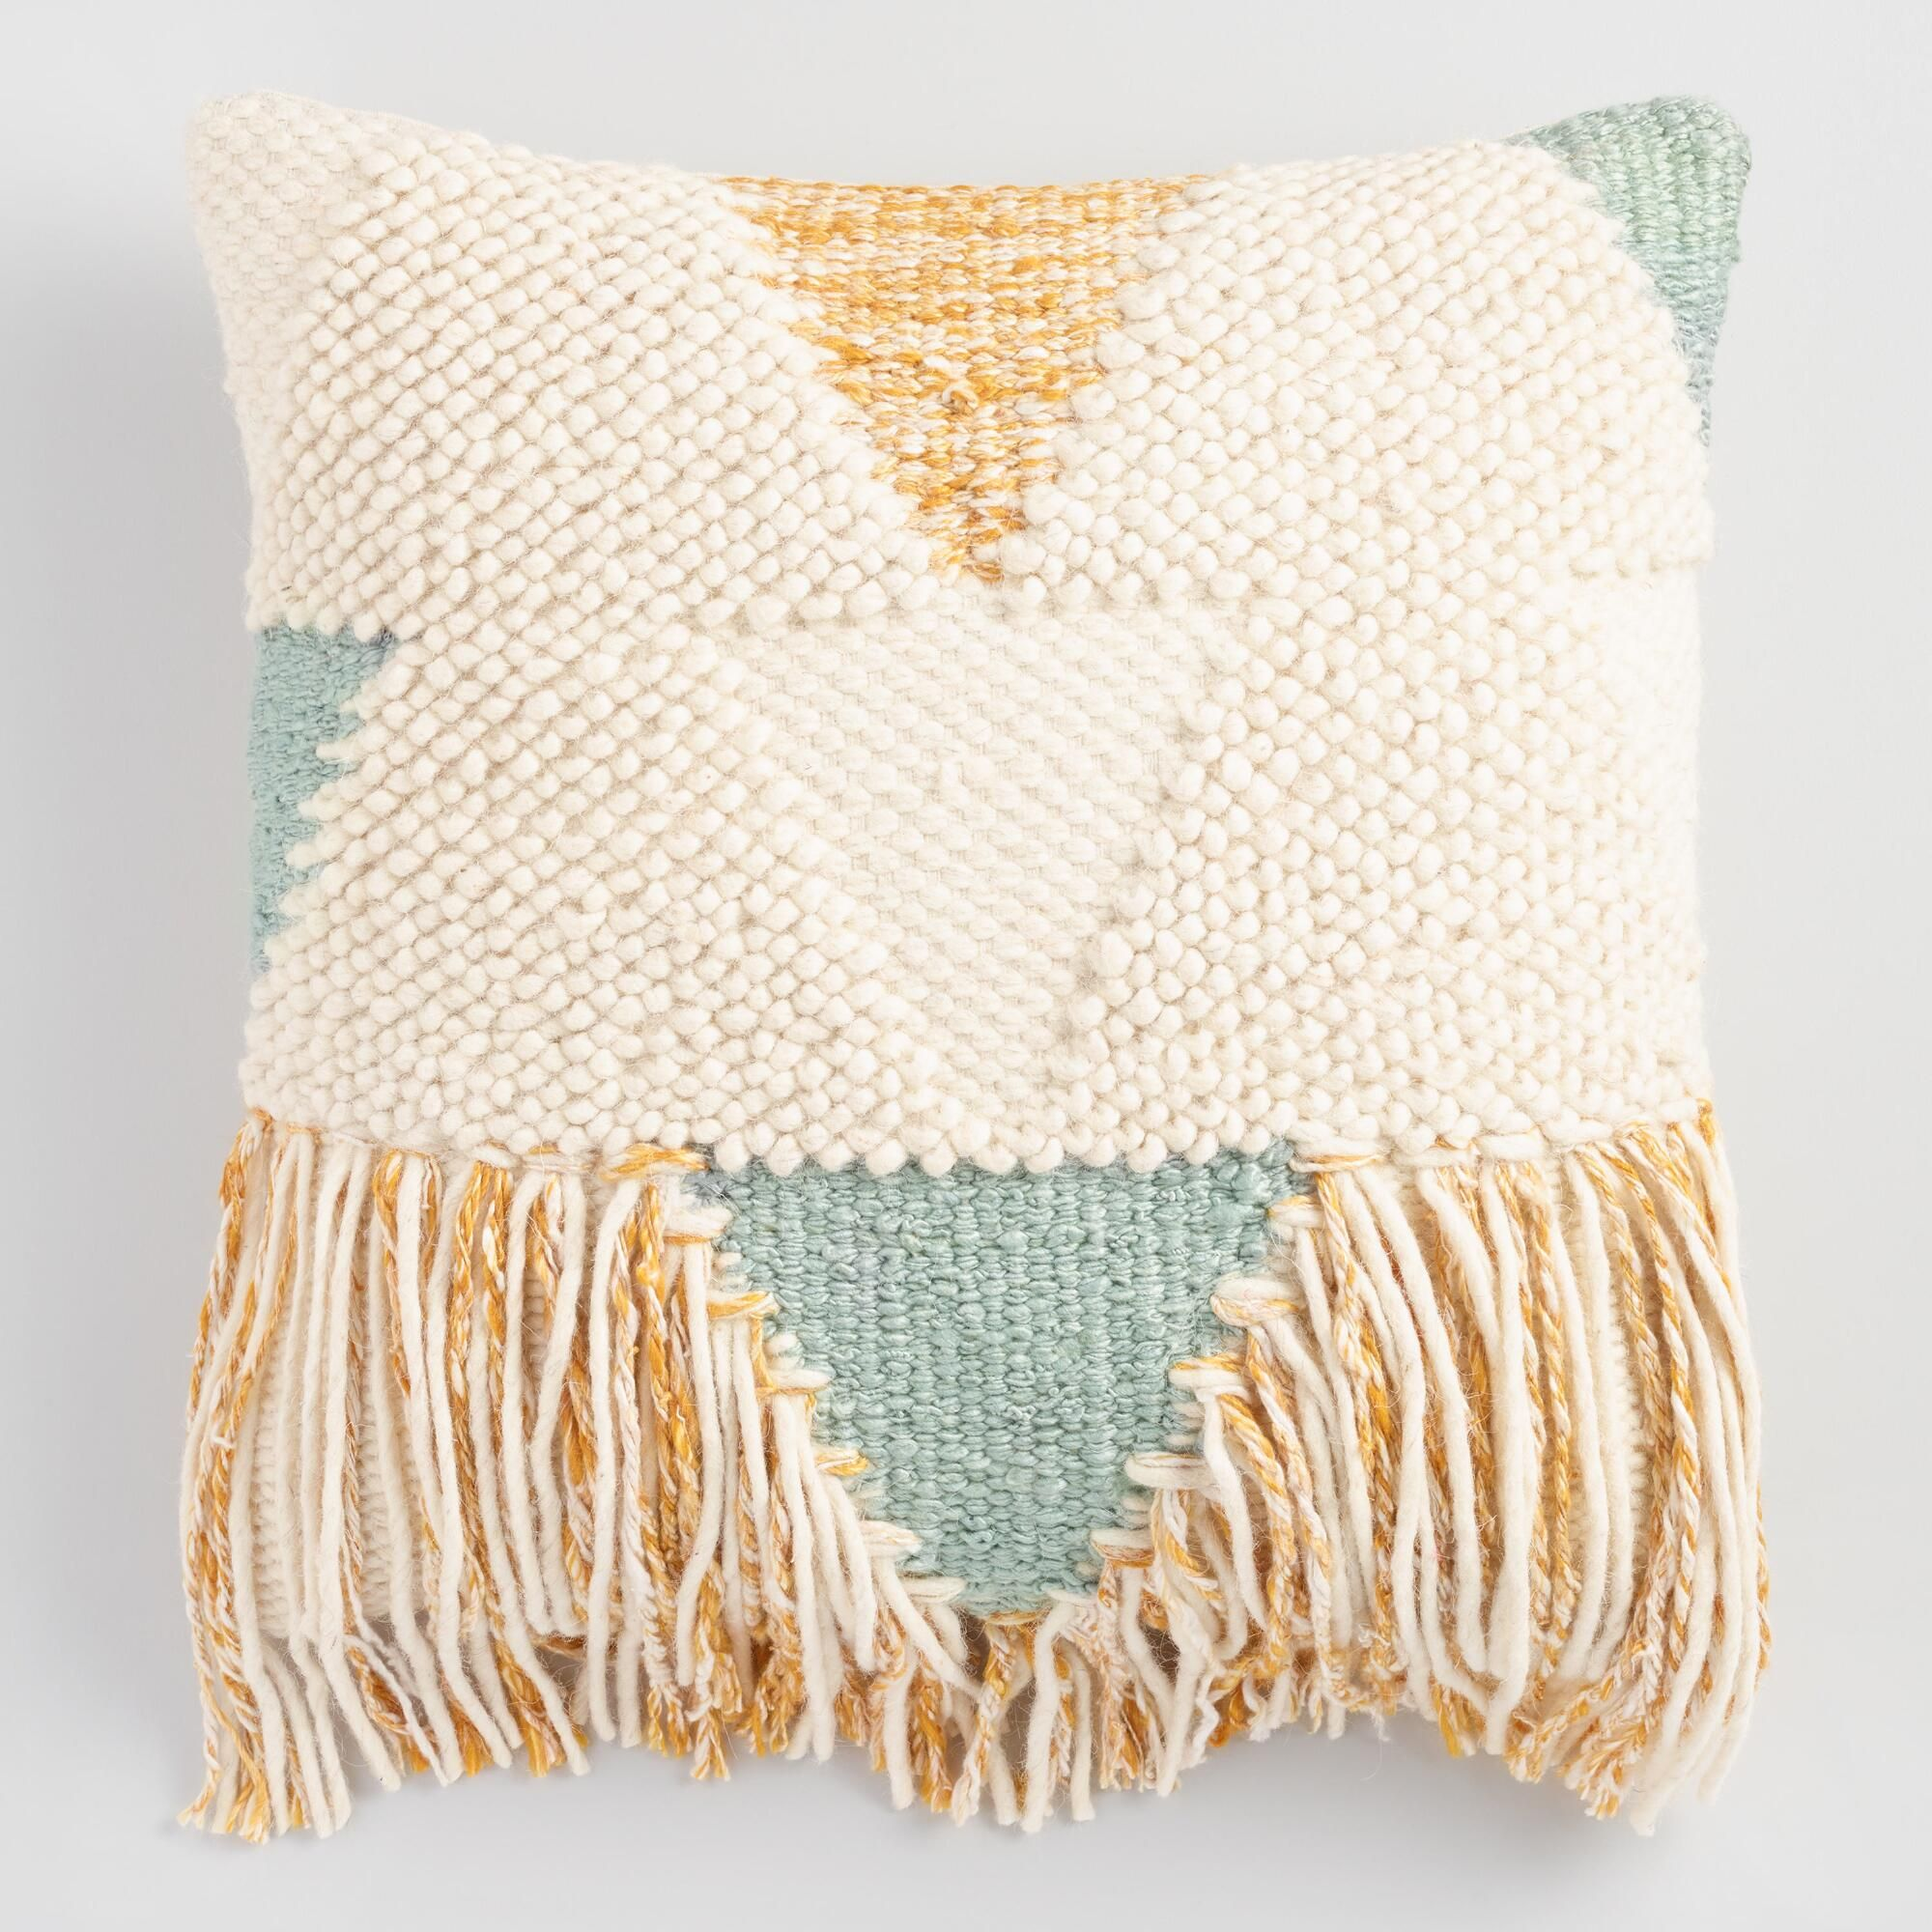 this exquisite throw pillow exudes boho ruginspired style with  - this exquisite throw pillow exudes boho ruginspired style with texturedyarn weaving in a